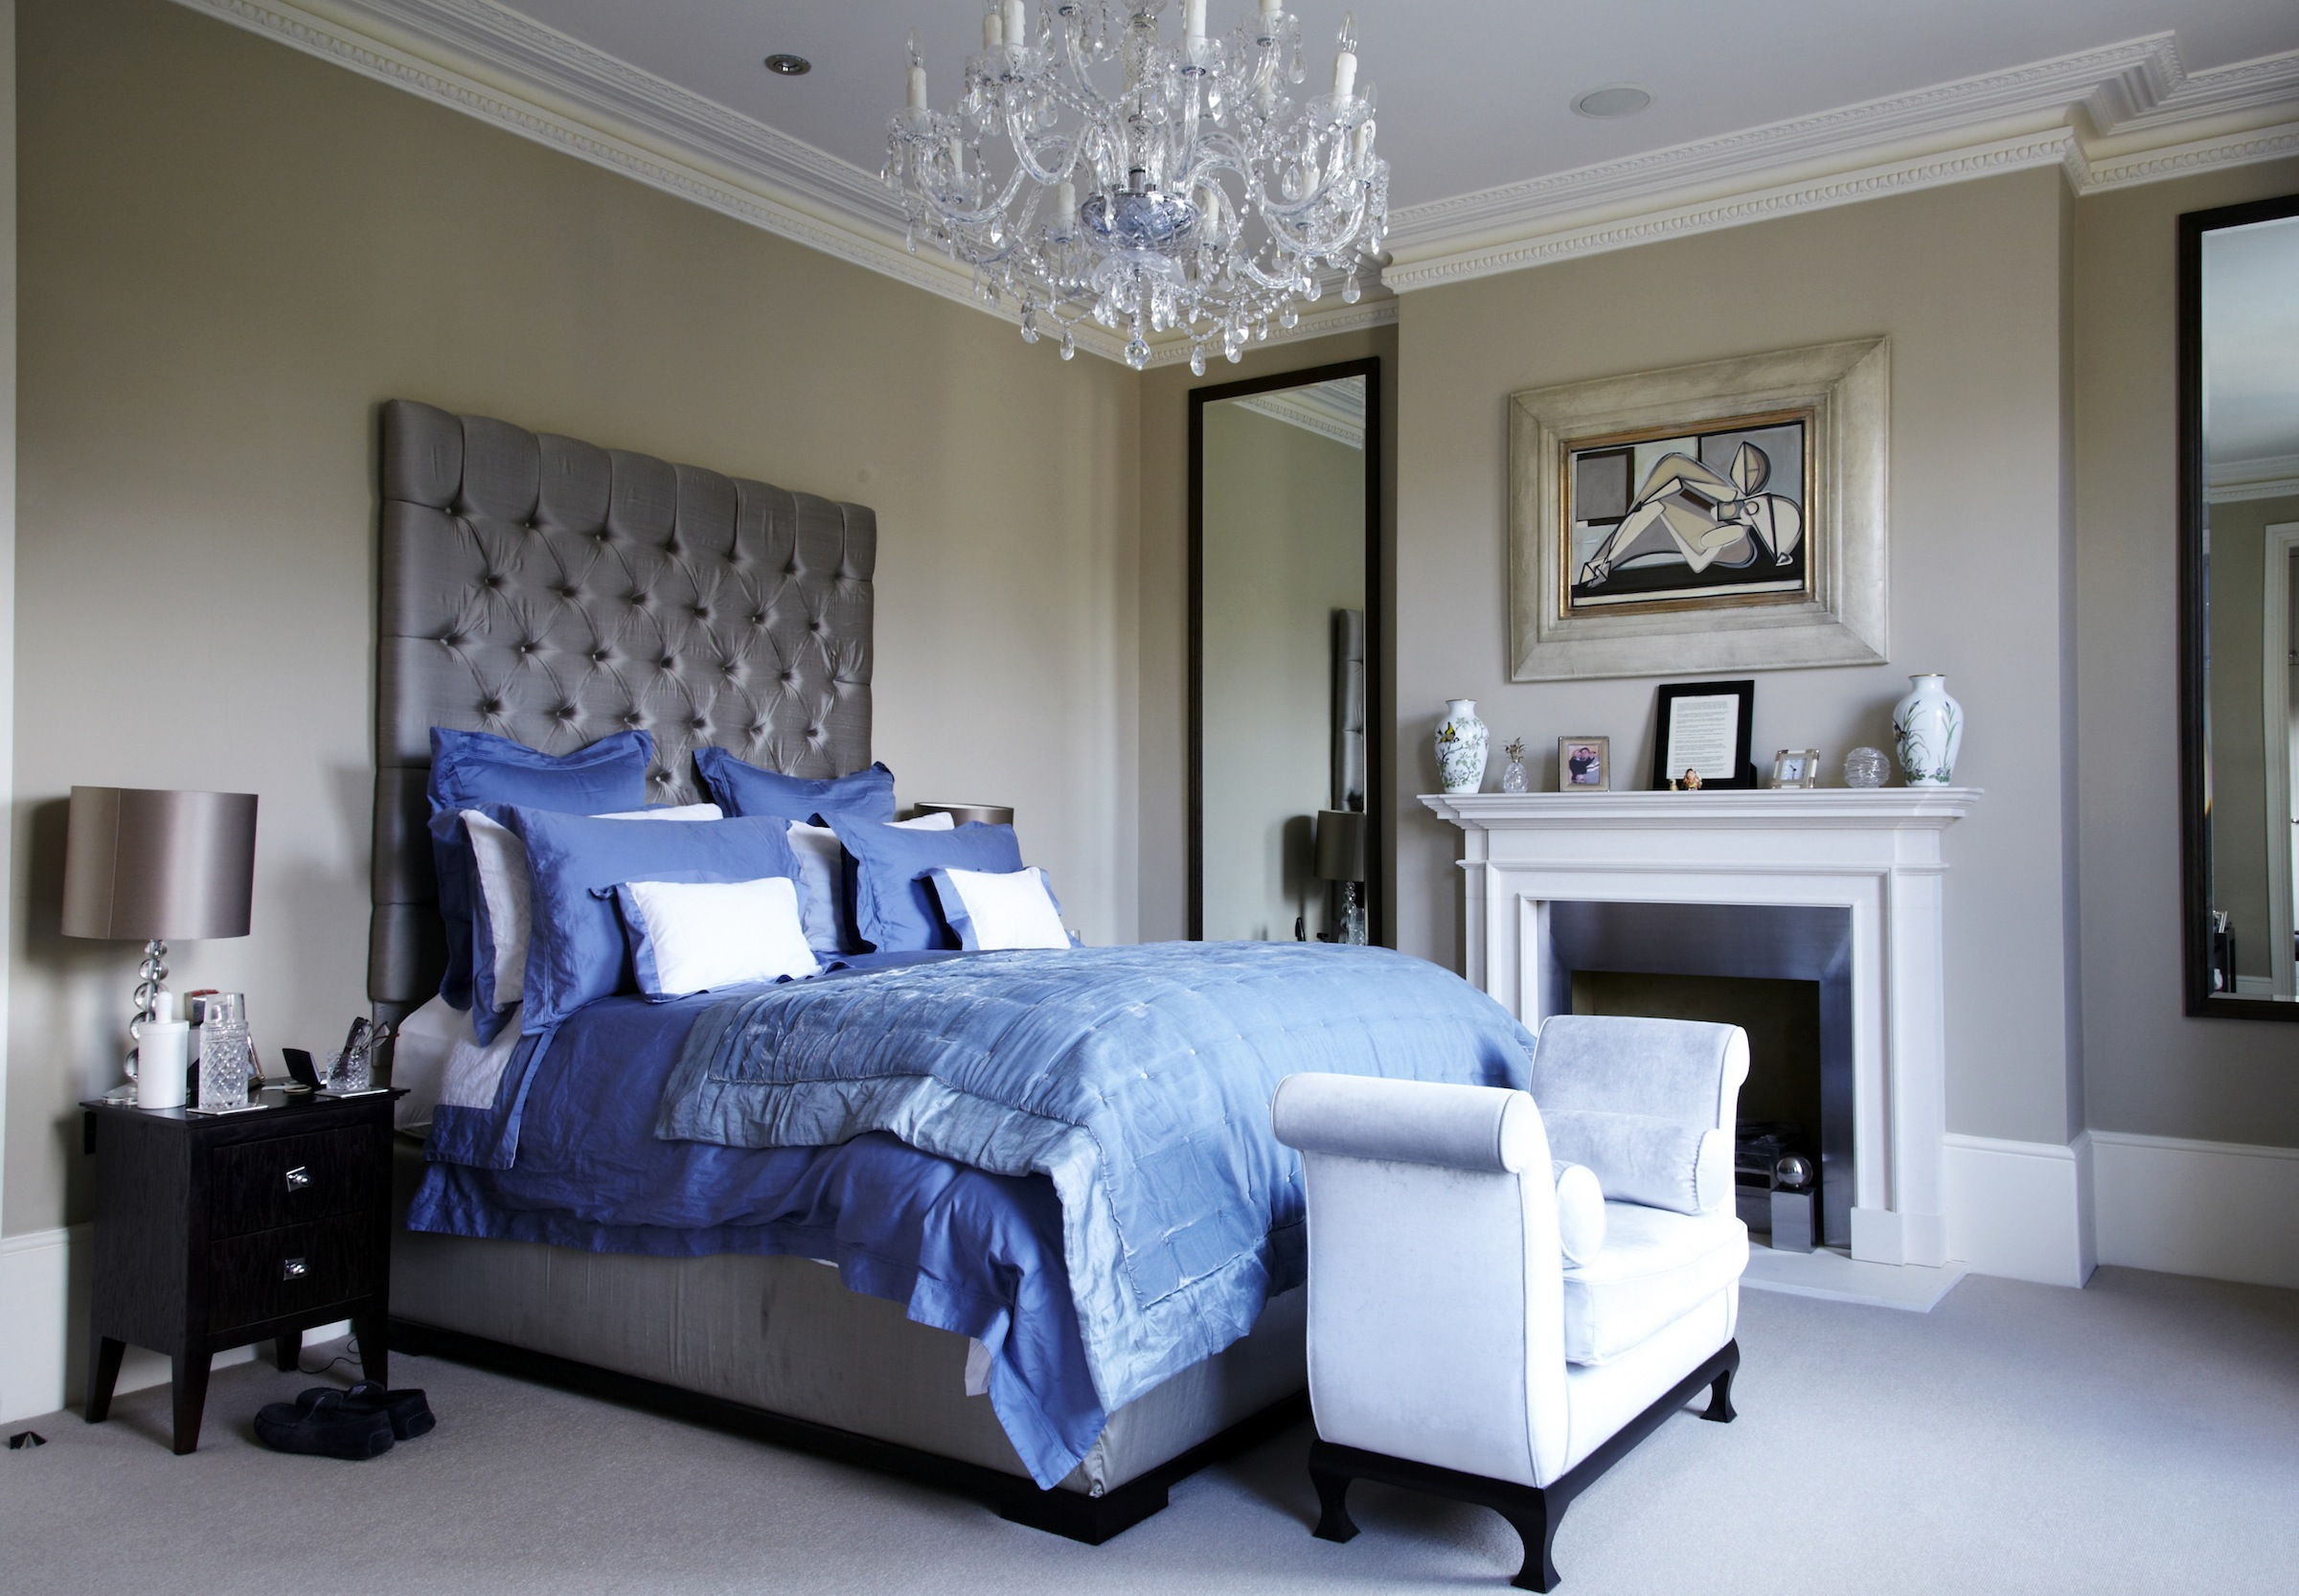 Modern Victorian Bedroom - Home Design